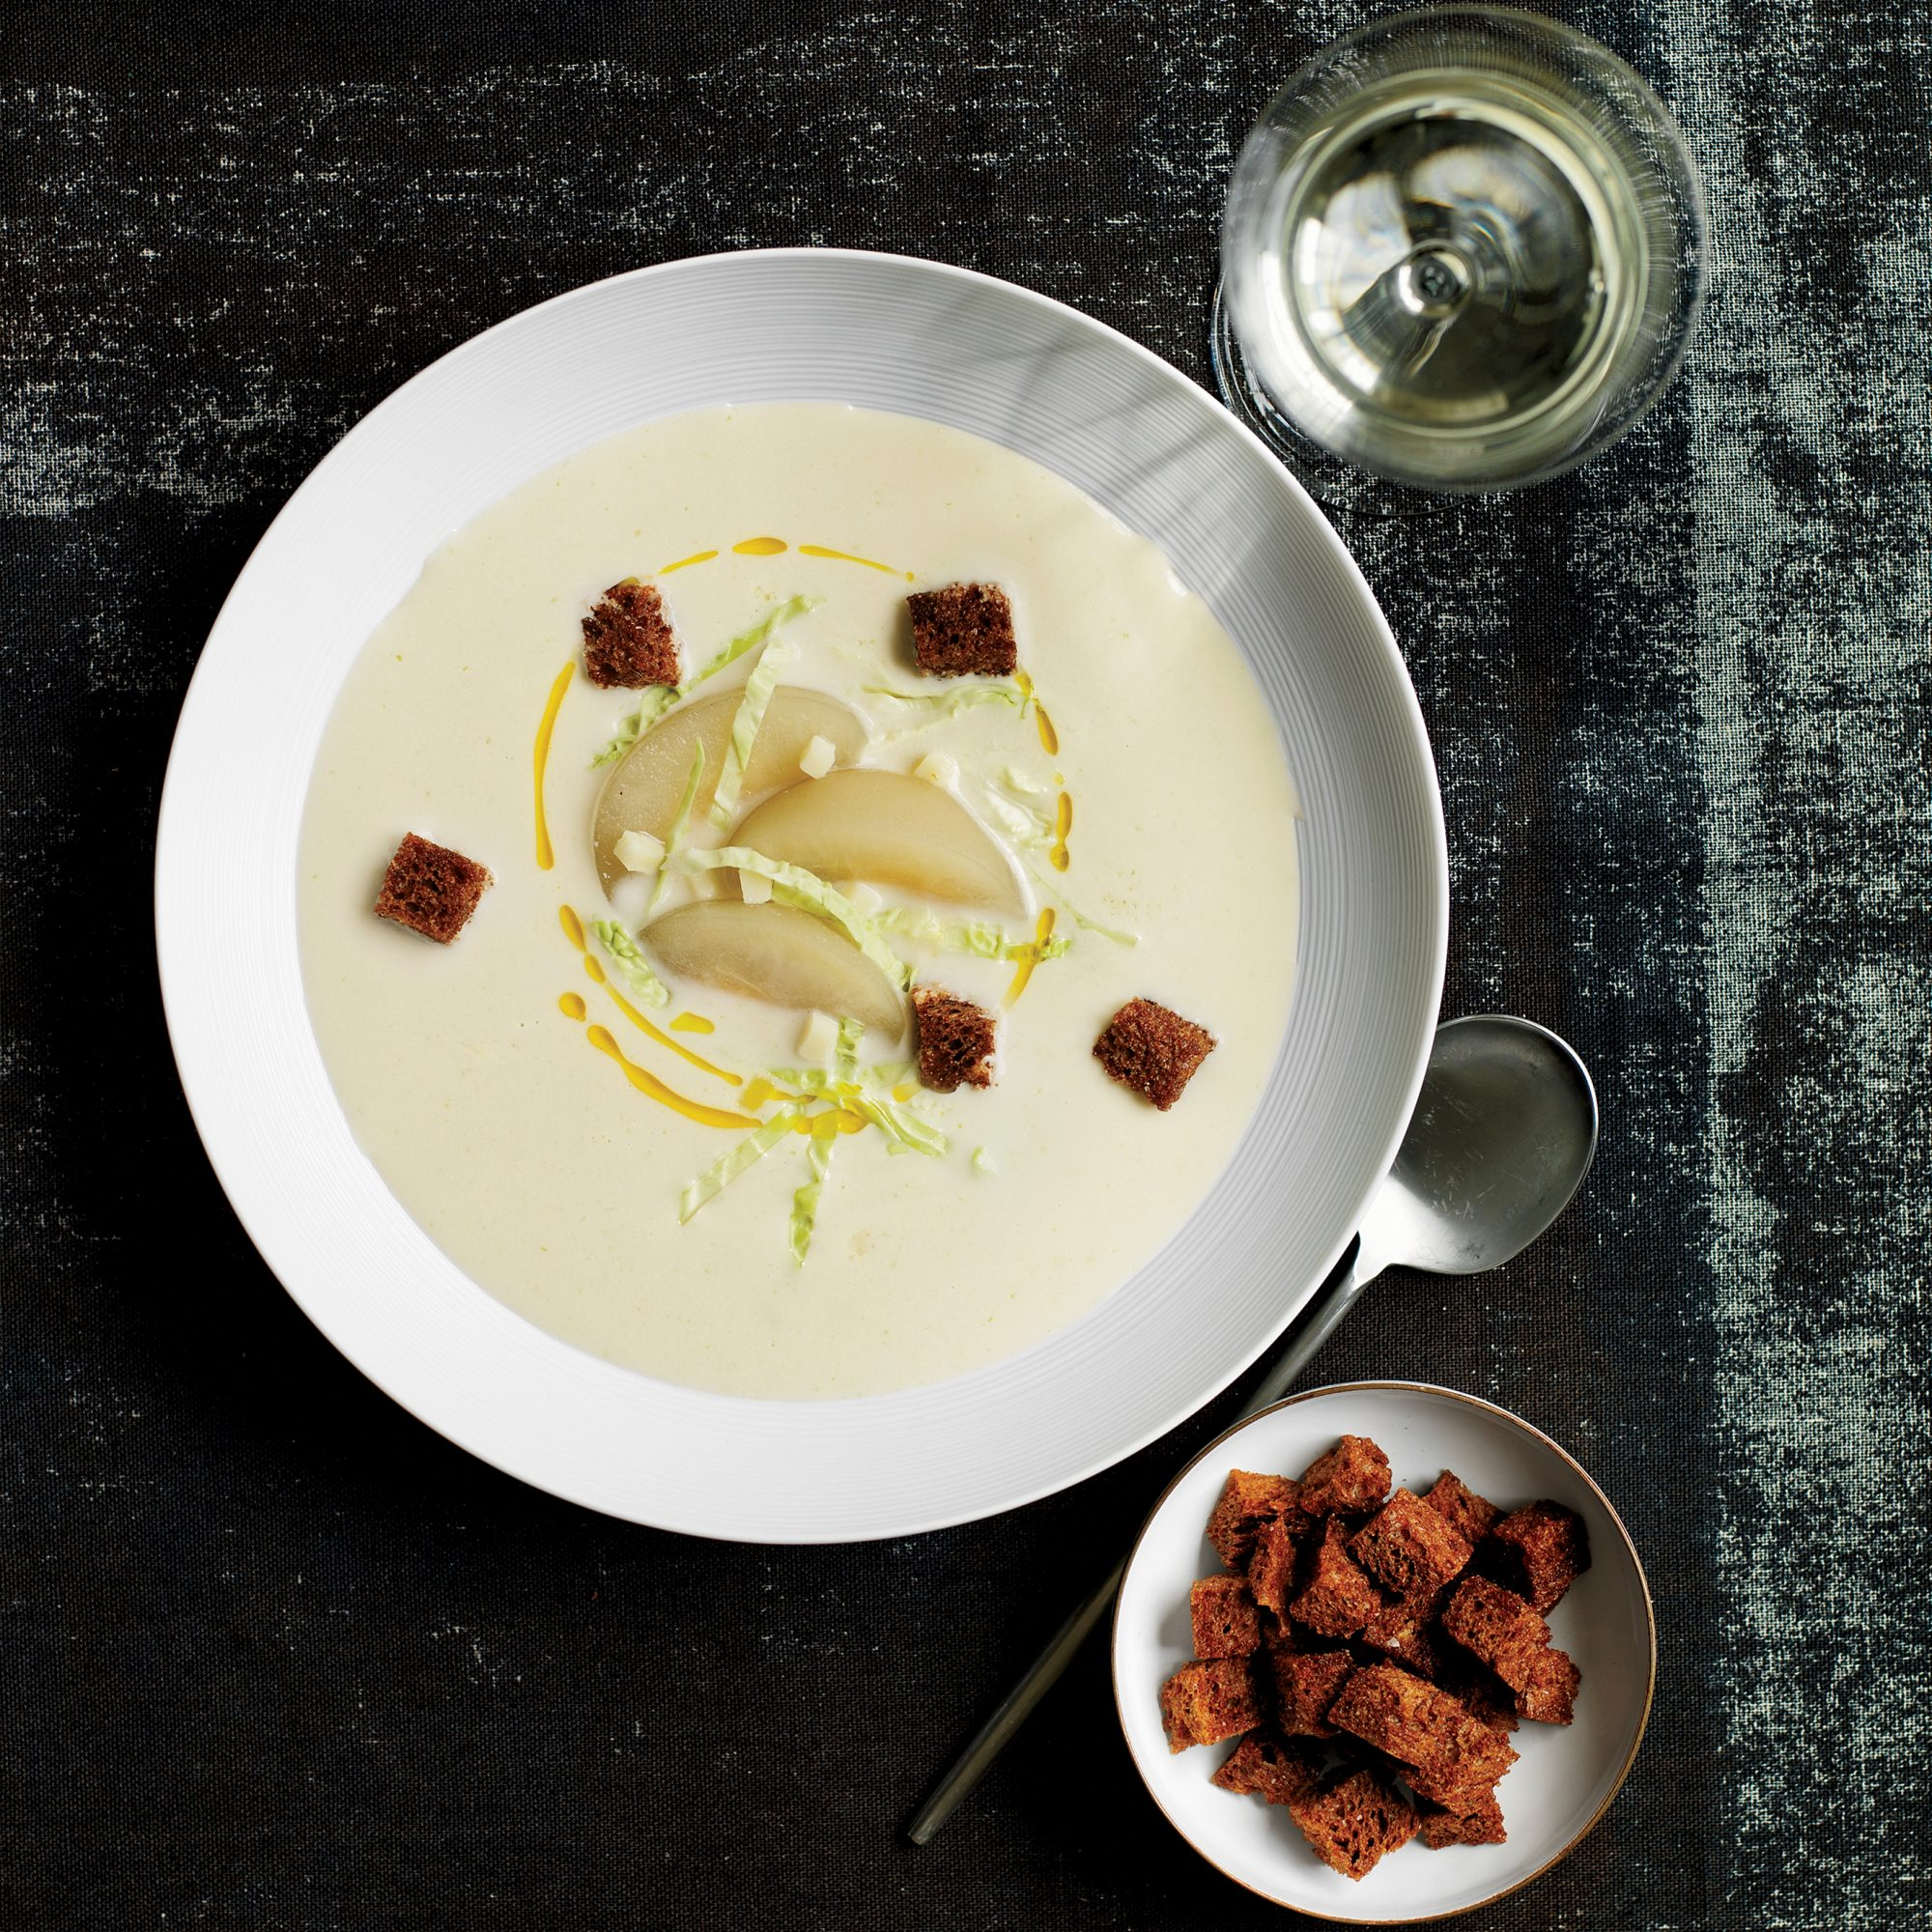 Cabbage Velouté with Poached Pears and Croutons